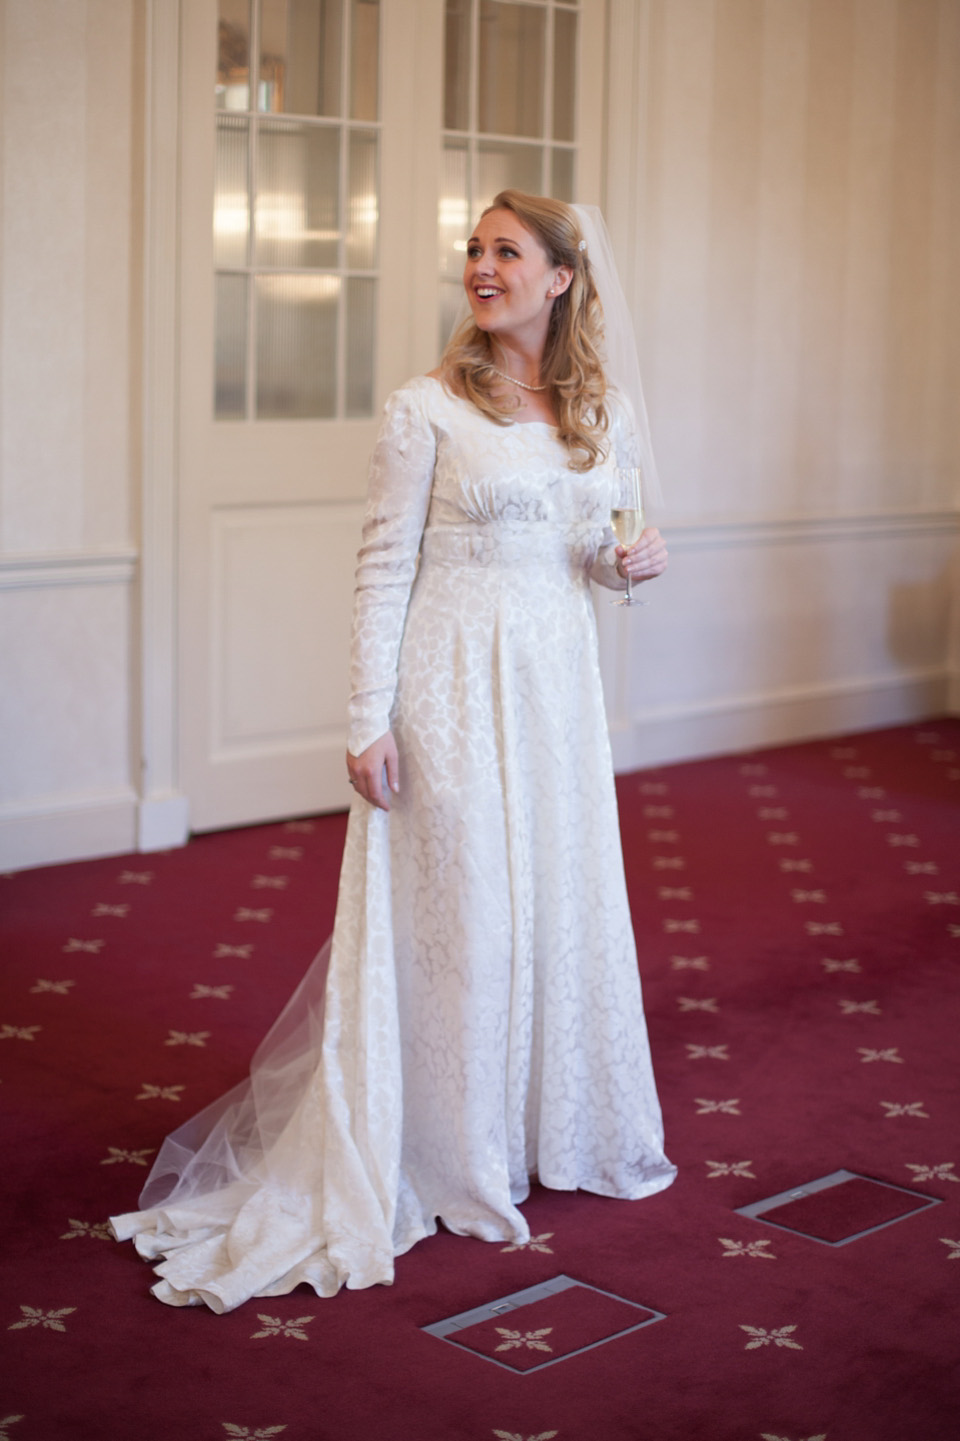 A 1940s Vintage Elizabeth Avey Long Sleeved Gown For A Traditional